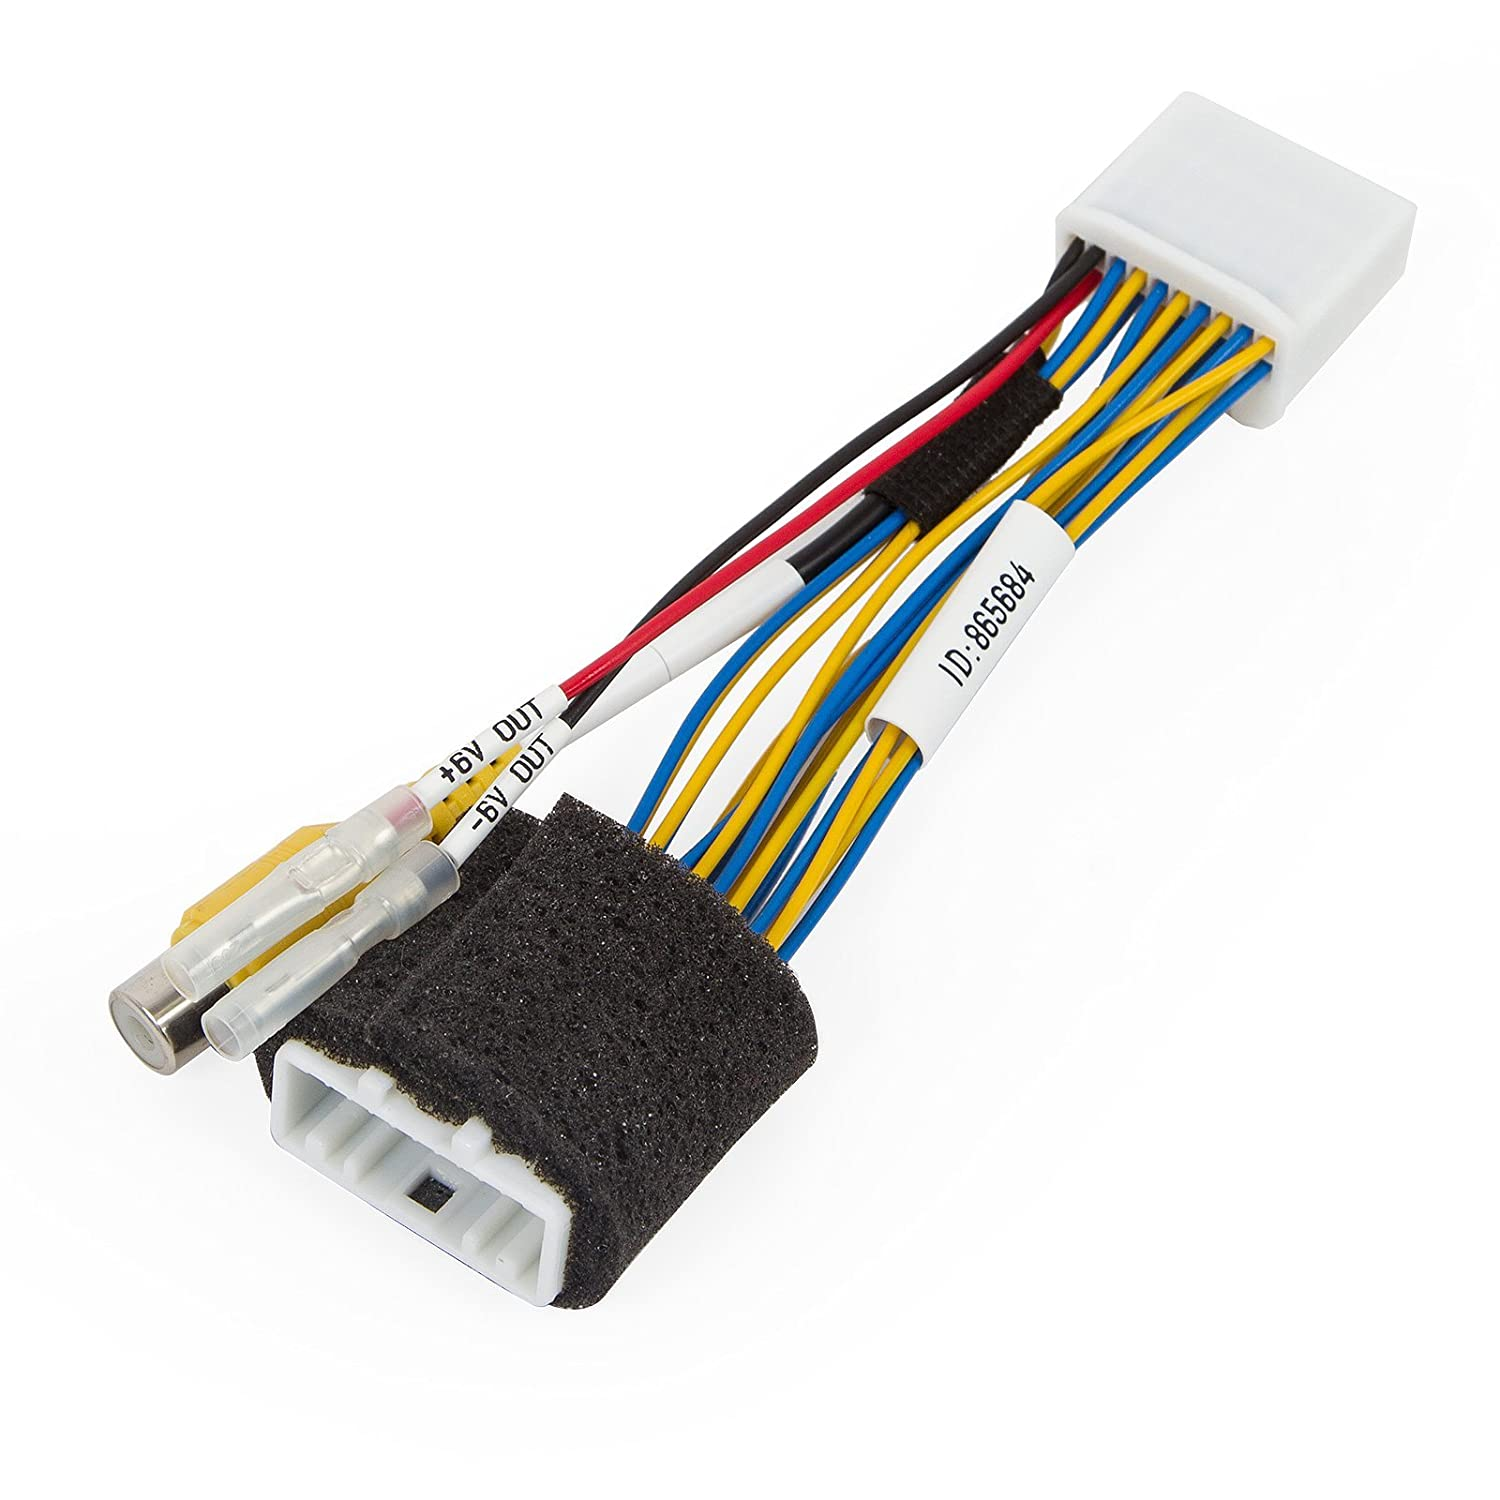 Rear View Camera Connection Cable For Toyota Auris 20 Pin Stereo Wiring Avensis Camry Corolla Prius Rav4 With Gen5 Gen6 Automotive